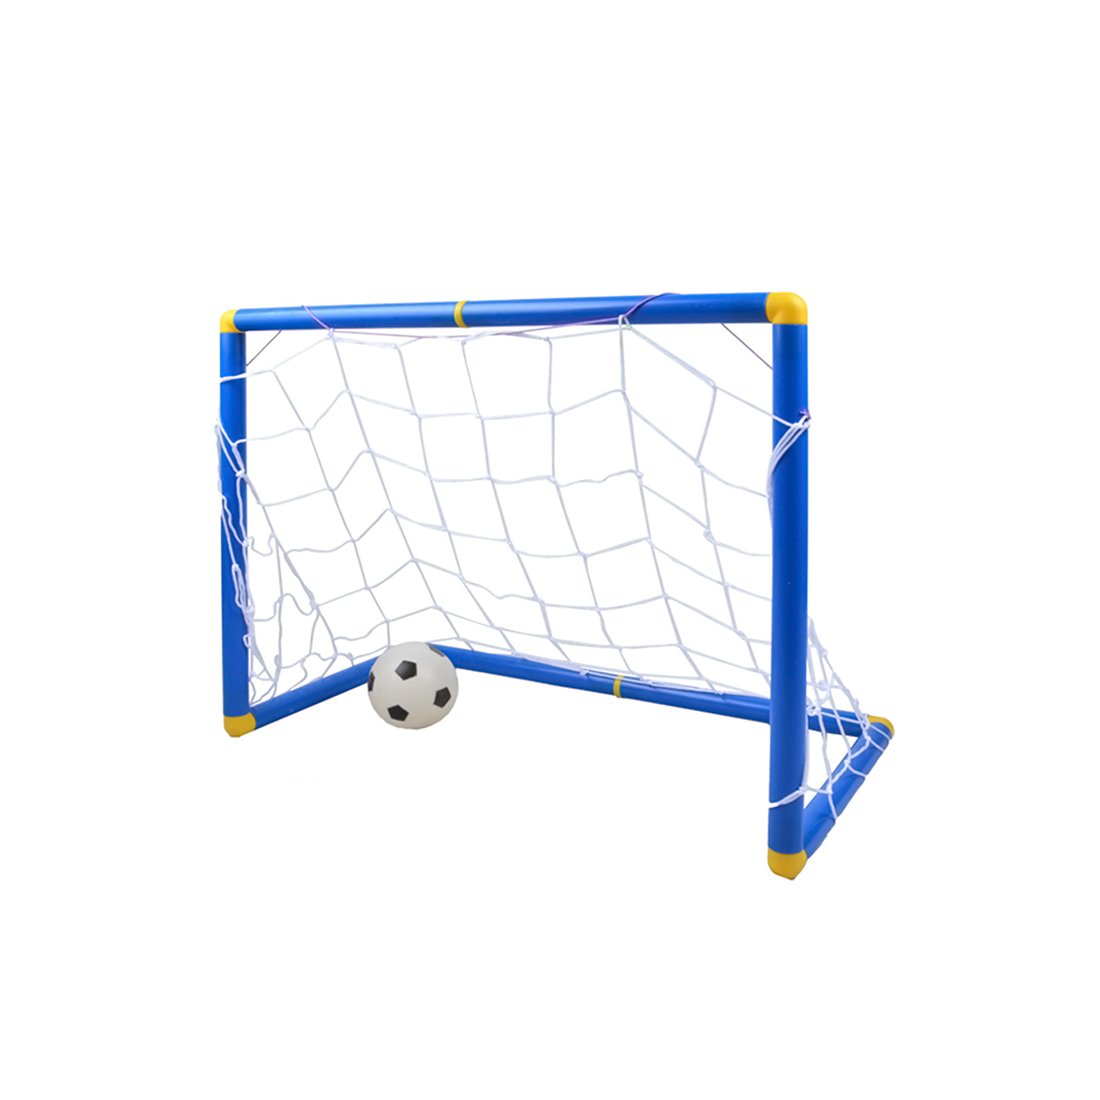 ruiyif Soccer Goal Net for Kids Toddlers Includes Goal with Netサッカーボール手ポンプインドアアウトドア裏庭 S 0422K6M11R B0795F9FSJ S|Blue + White Blue + White S